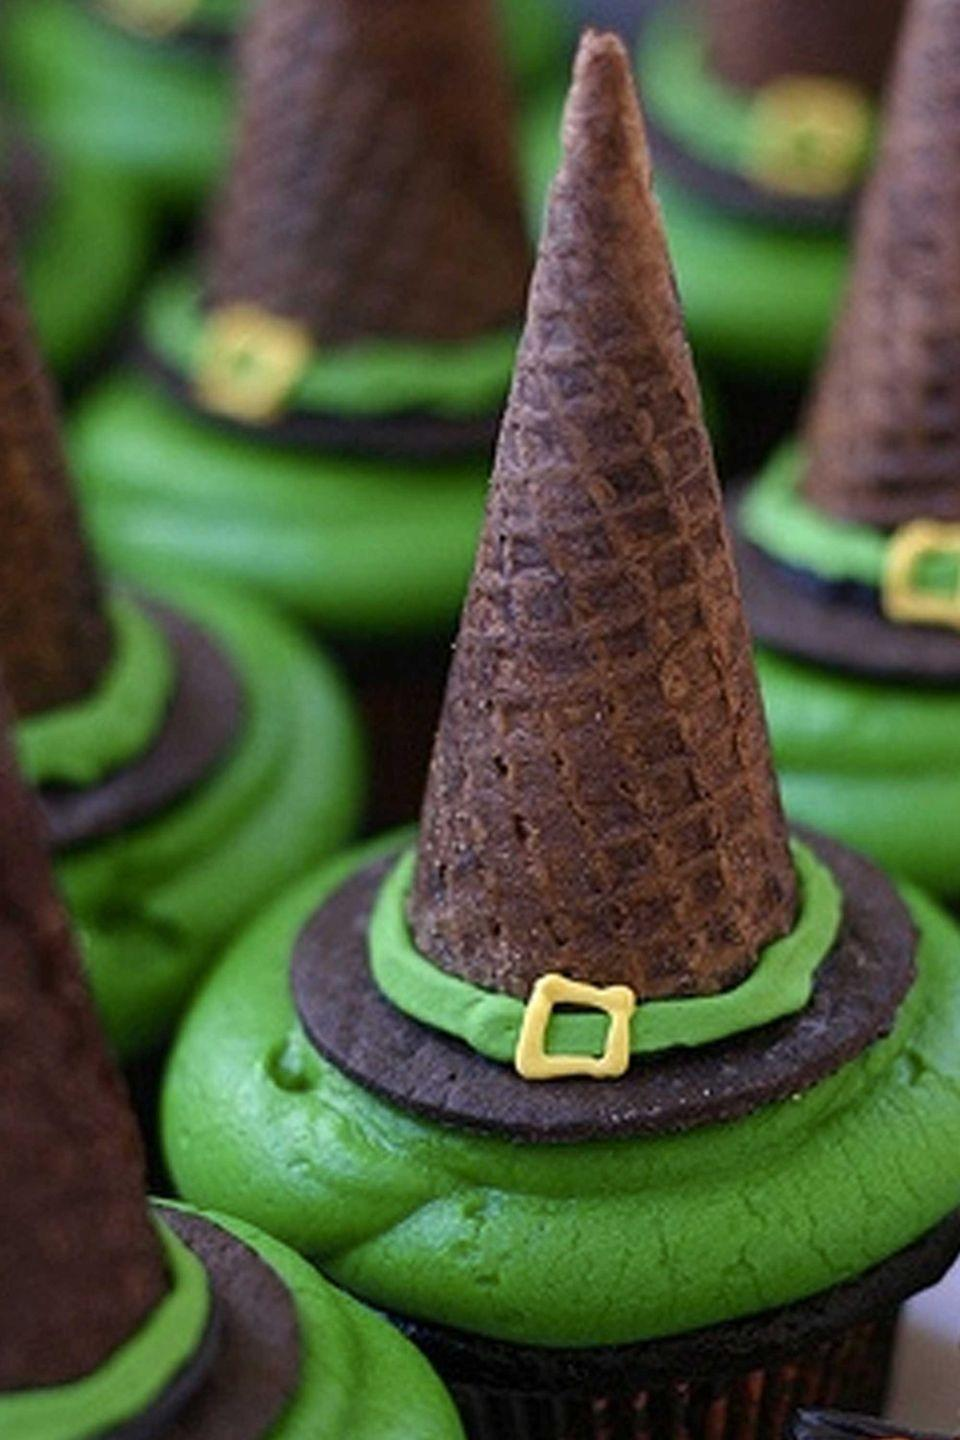 """<p>Don't trash those ice cream cones left over from summer just yet! Instead, use them as a clever """"witch's hat.""""</p><p> <strong>Get the recipe at </strong><a href=""""http://www.jessyandmelissa.com/recipe/recipes-by-course/dessert/cupcakes/witch-hat-mint-chocolate-cupcakes"""" rel=""""nofollow noopener"""" target=""""_blank"""" data-ylk=""""slk:Jessy and Melissa"""" class=""""link rapid-noclick-resp""""><strong>Jessy and Melissa</strong></a>.</p>"""